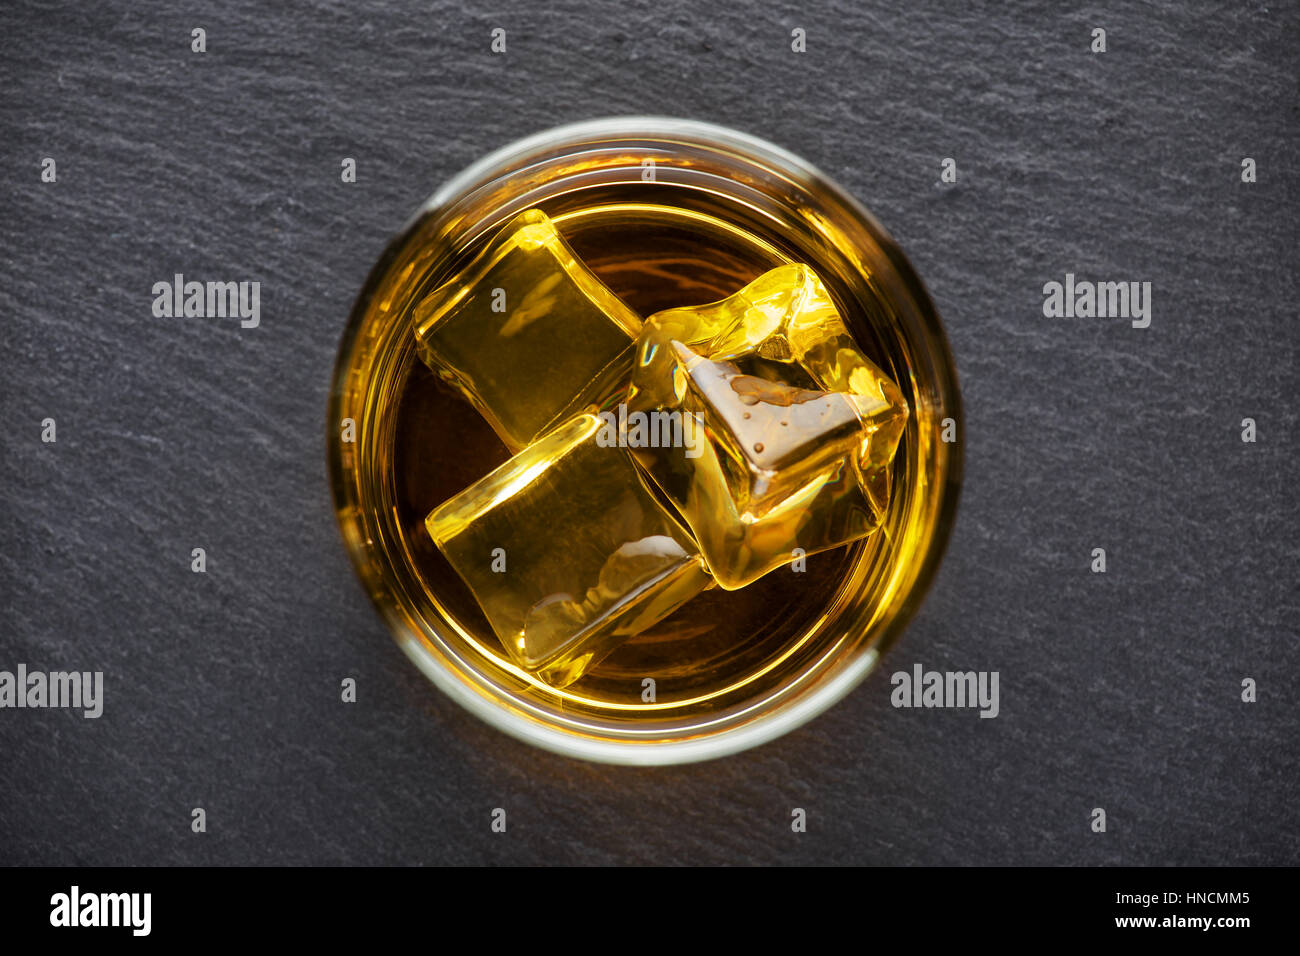 Round glass of whiskey with ice on a black background shot from above - Stock Image